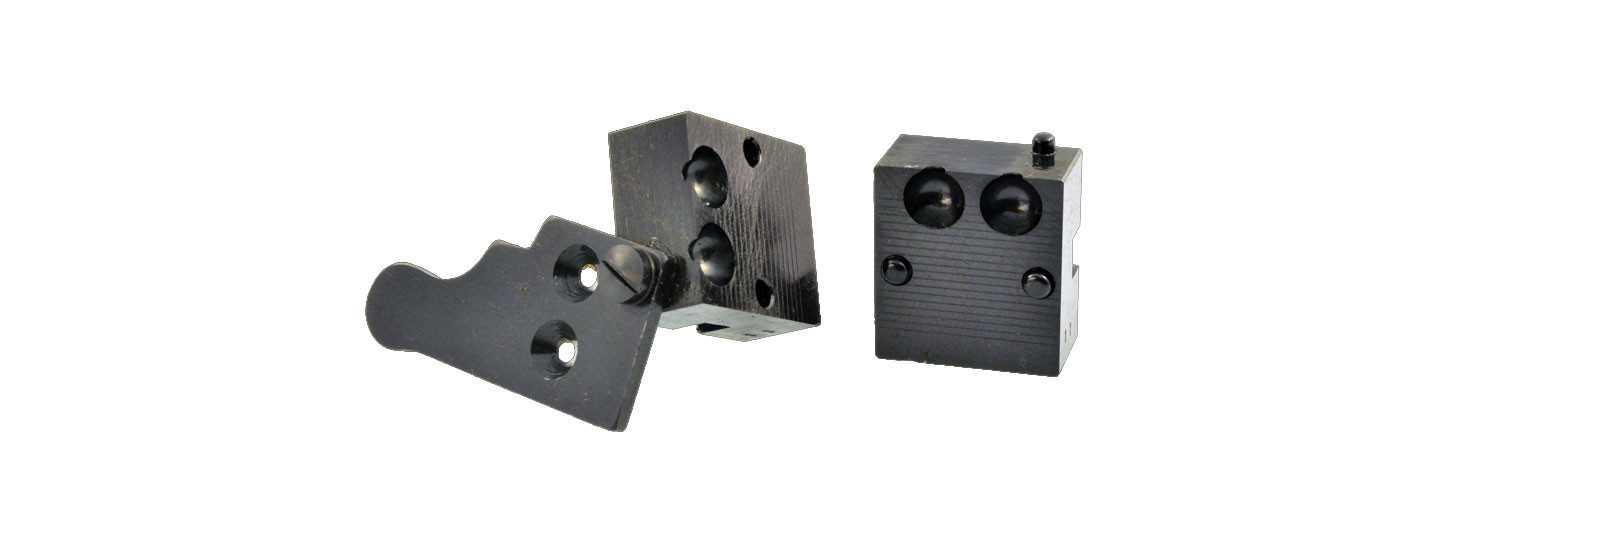 Bullet mould block with 2 cavity - round ball